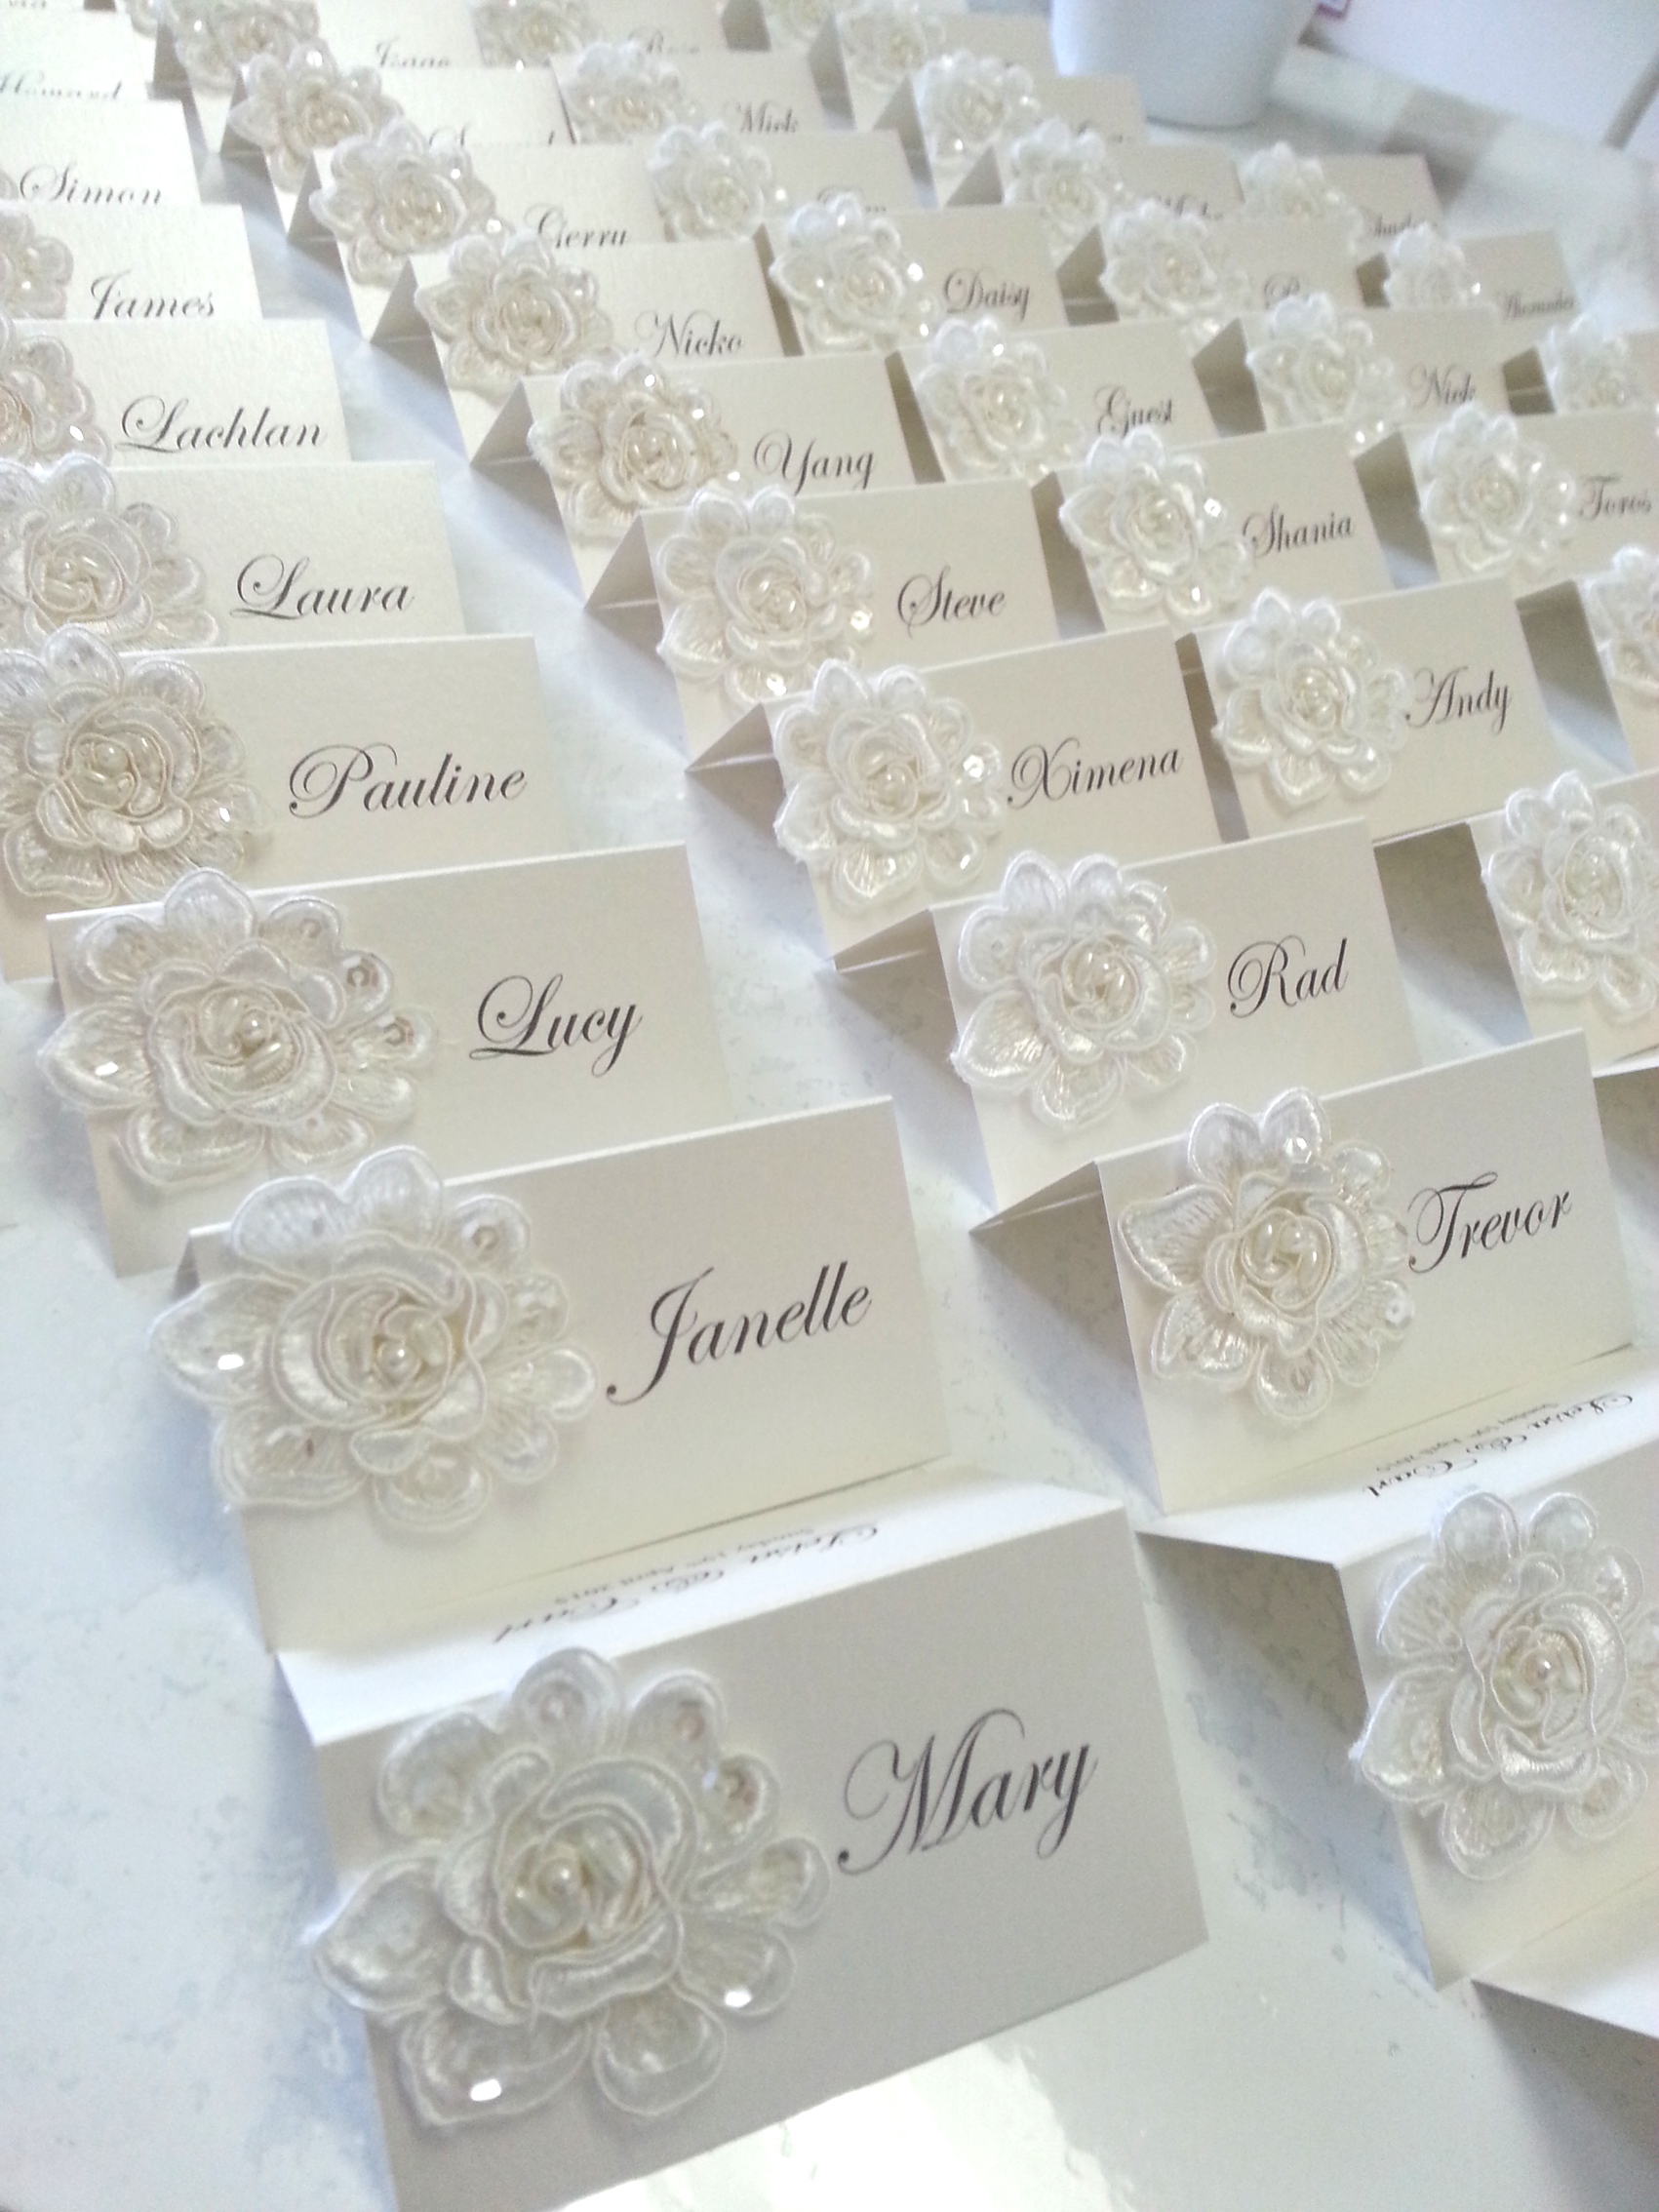 lace place cards sydney.jpg